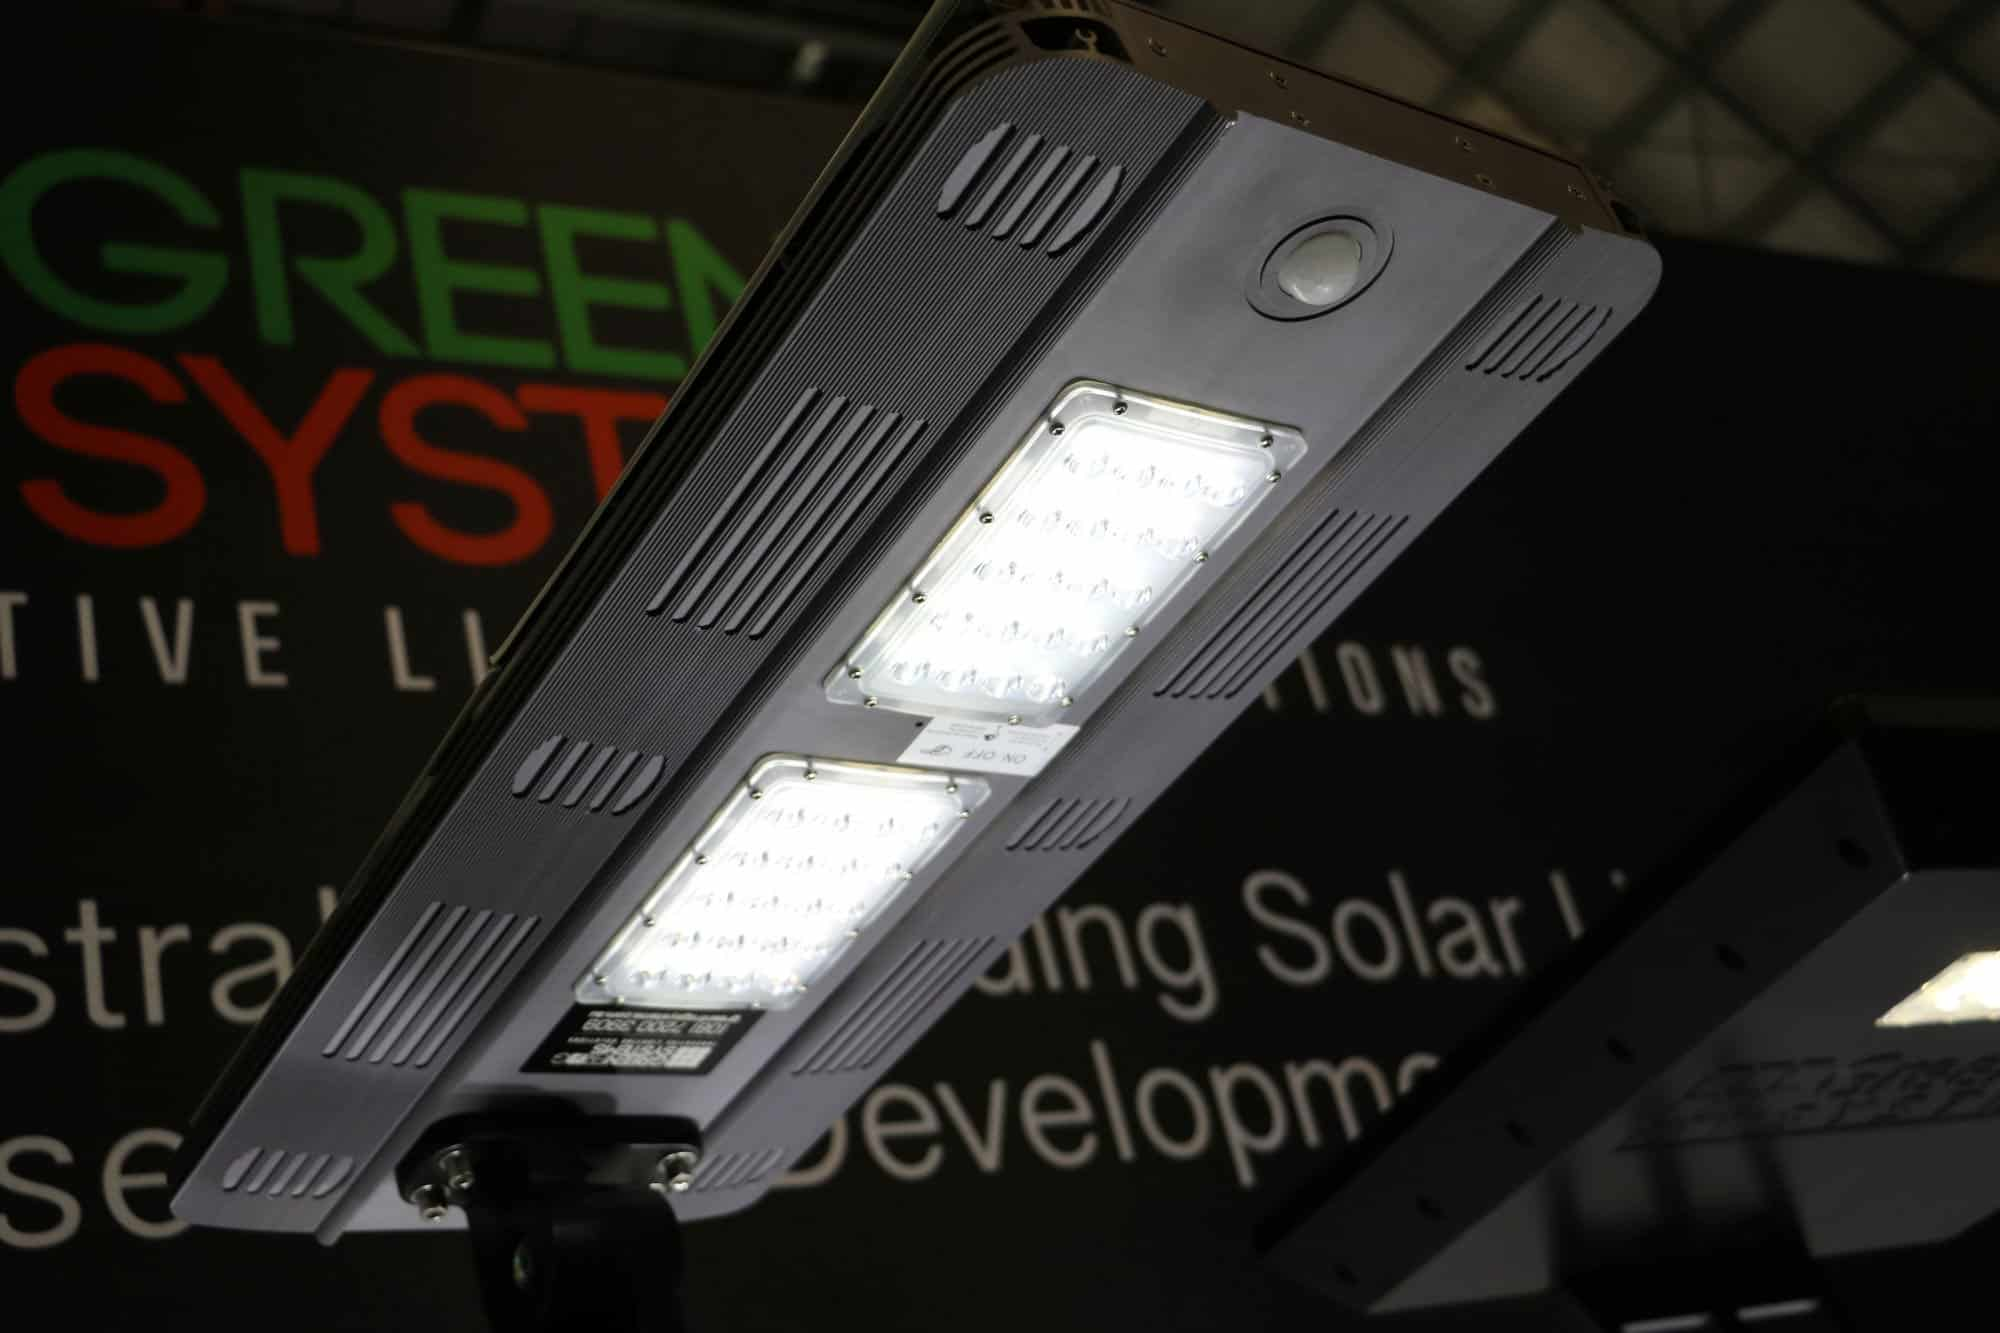 GFS-15-Guardian solar powered path light